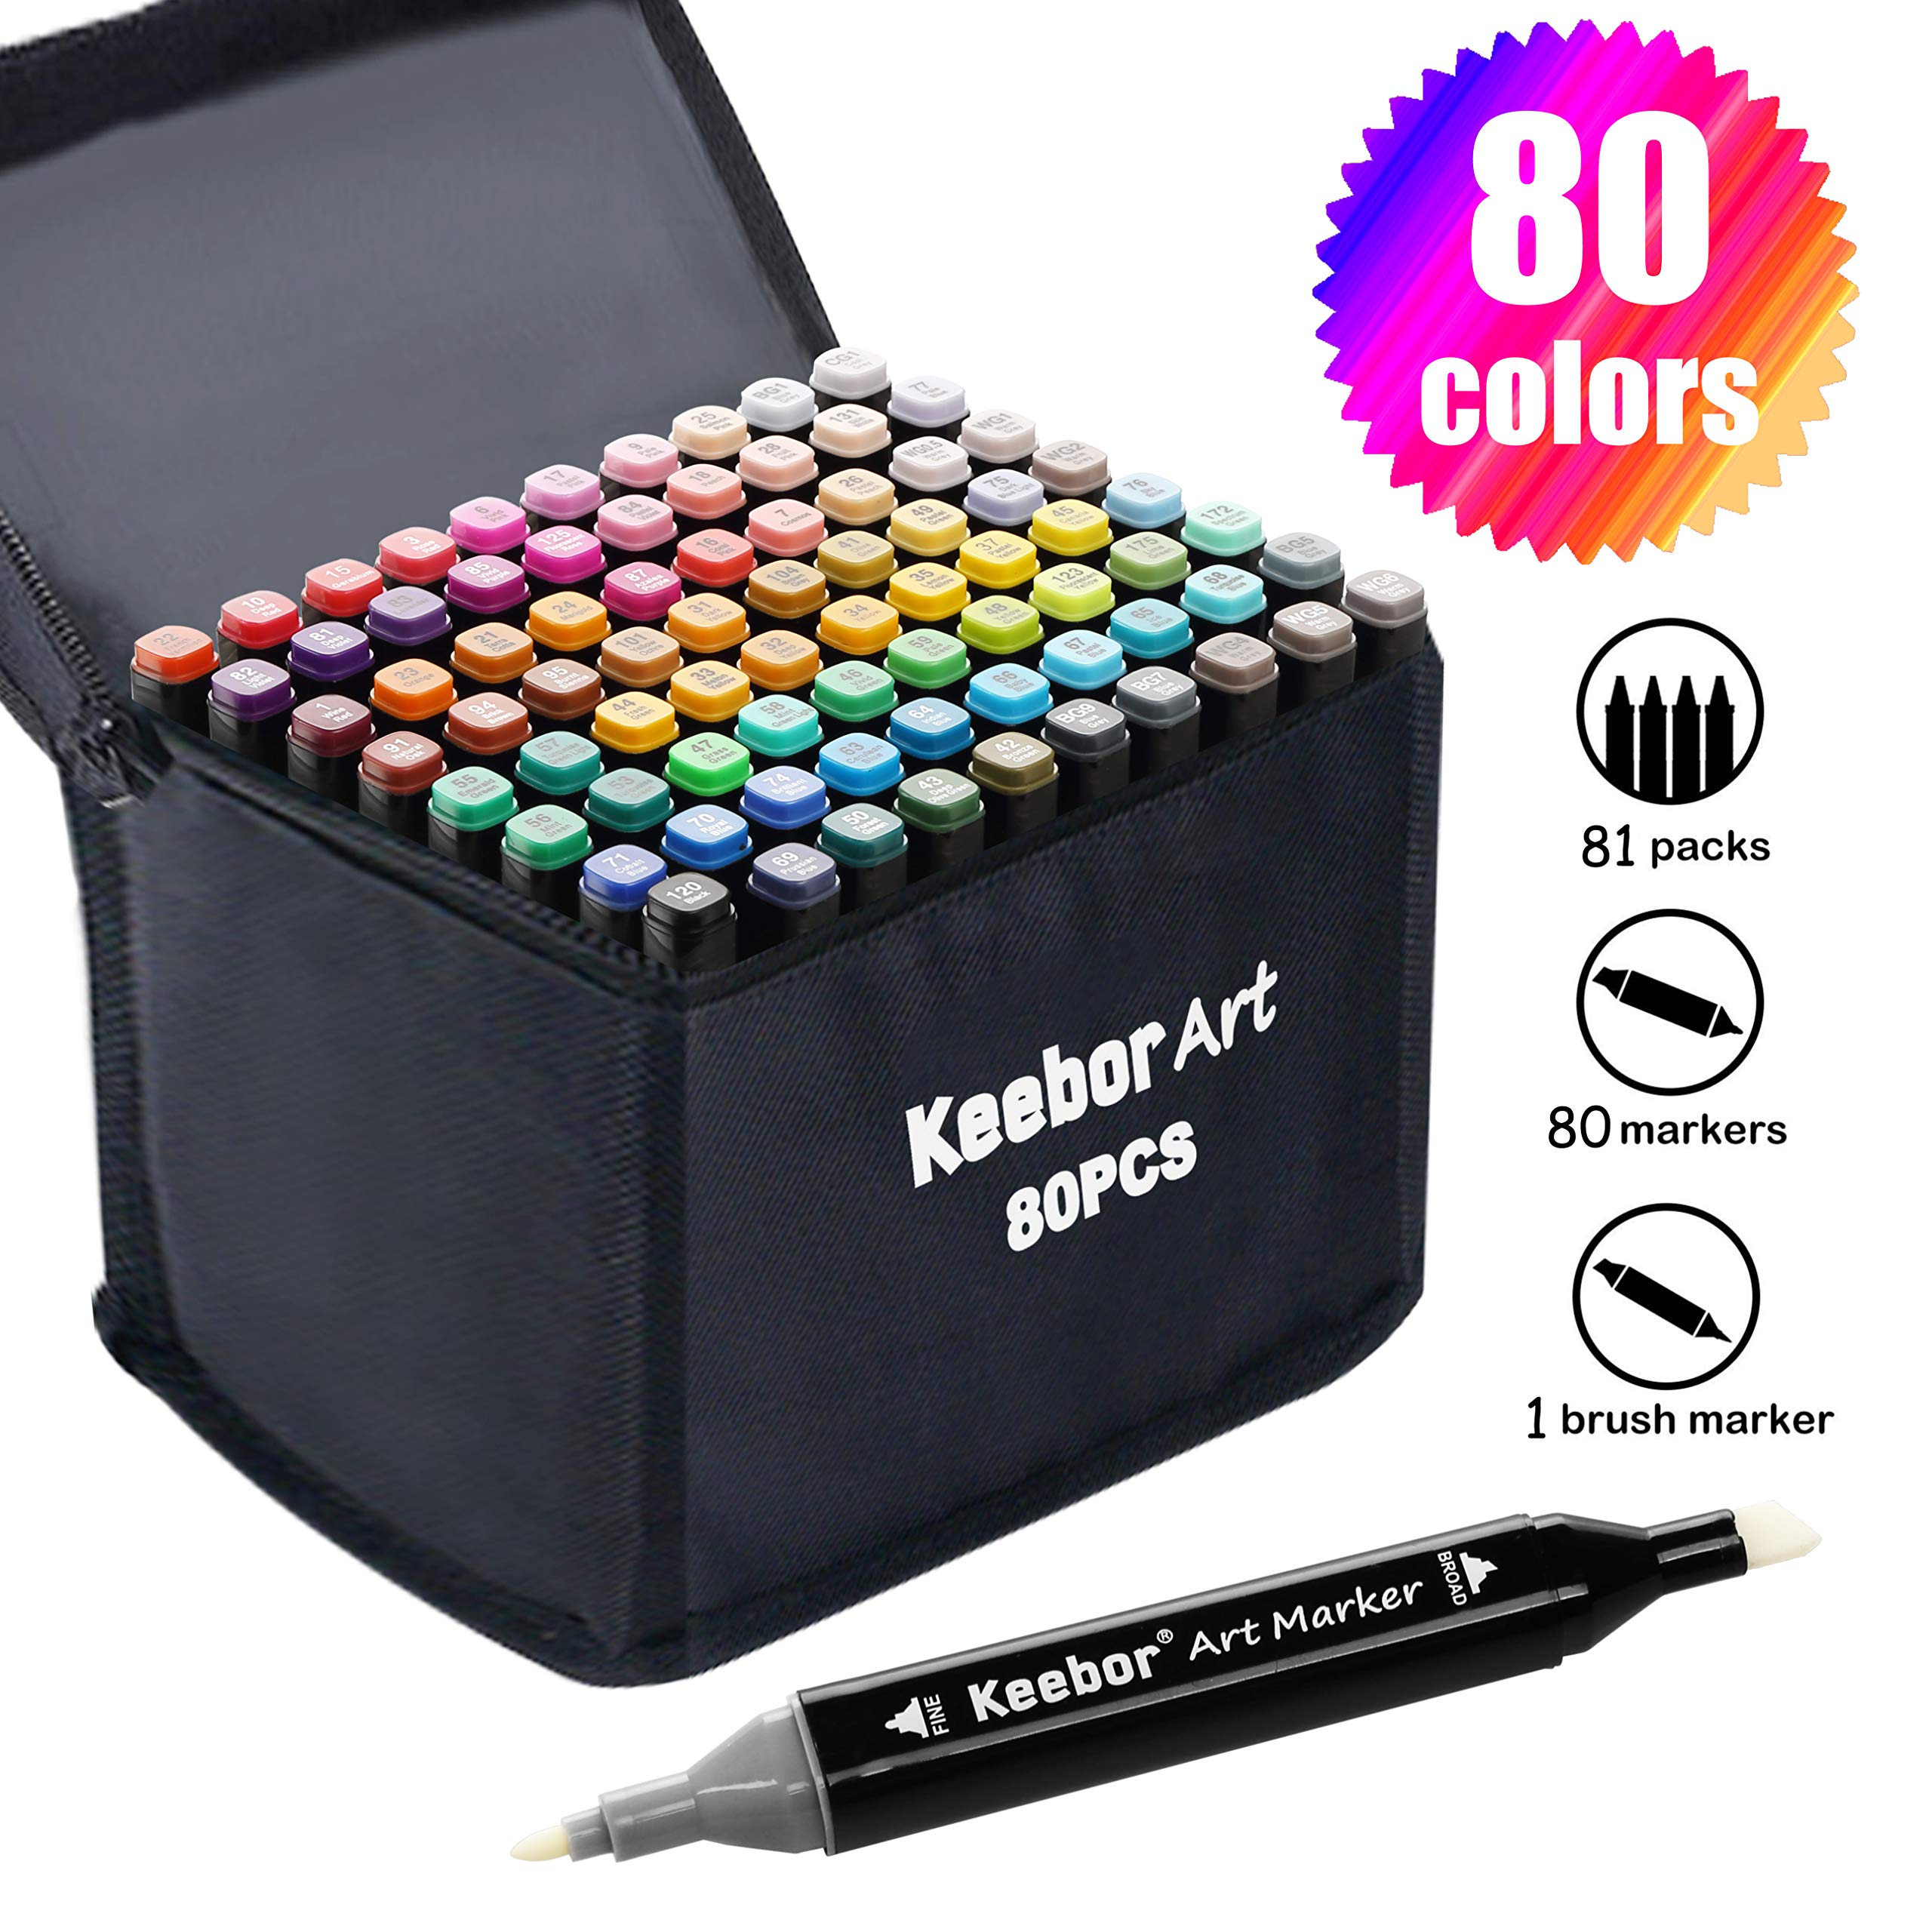 Keebor Advanced 80+1 Colors Dual Tip Alcohol-Based Art Markers, Plus 1 Blender Marker with Thick Packing by Keebor